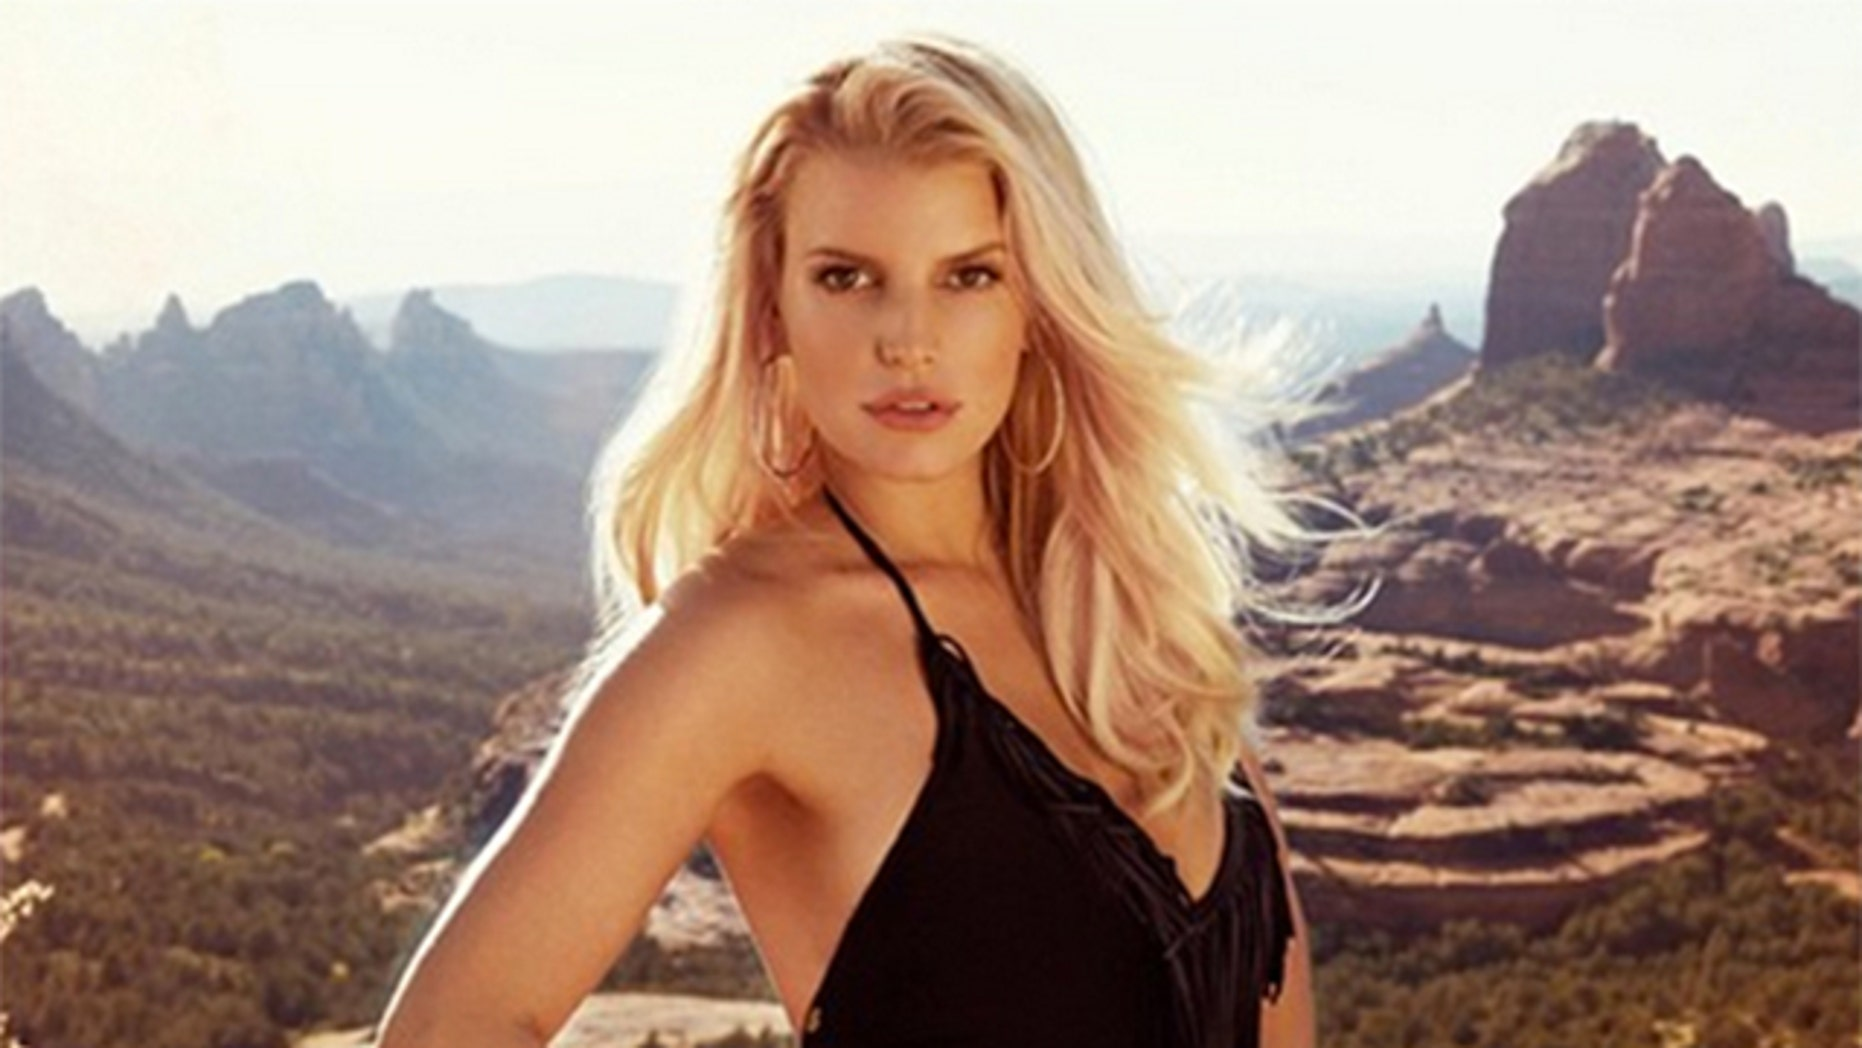 Jessica Simpson in swimsuit from her fashion line.